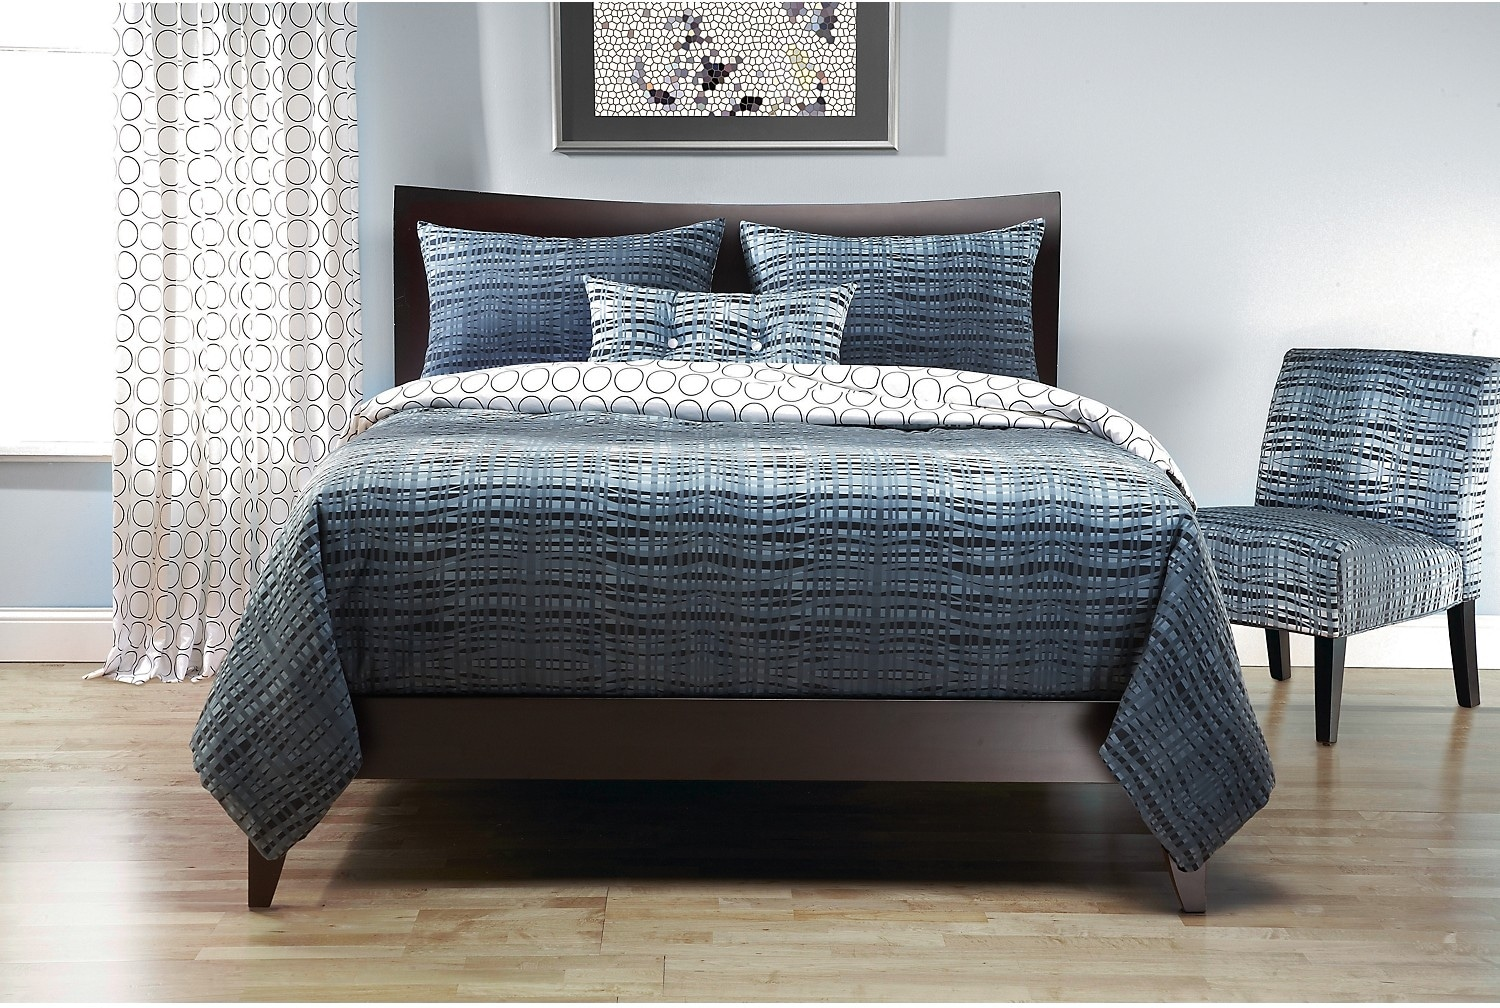 Mattresses and Bedding - Interweave Reversible 3 Piece Twin Duvet Cover Set